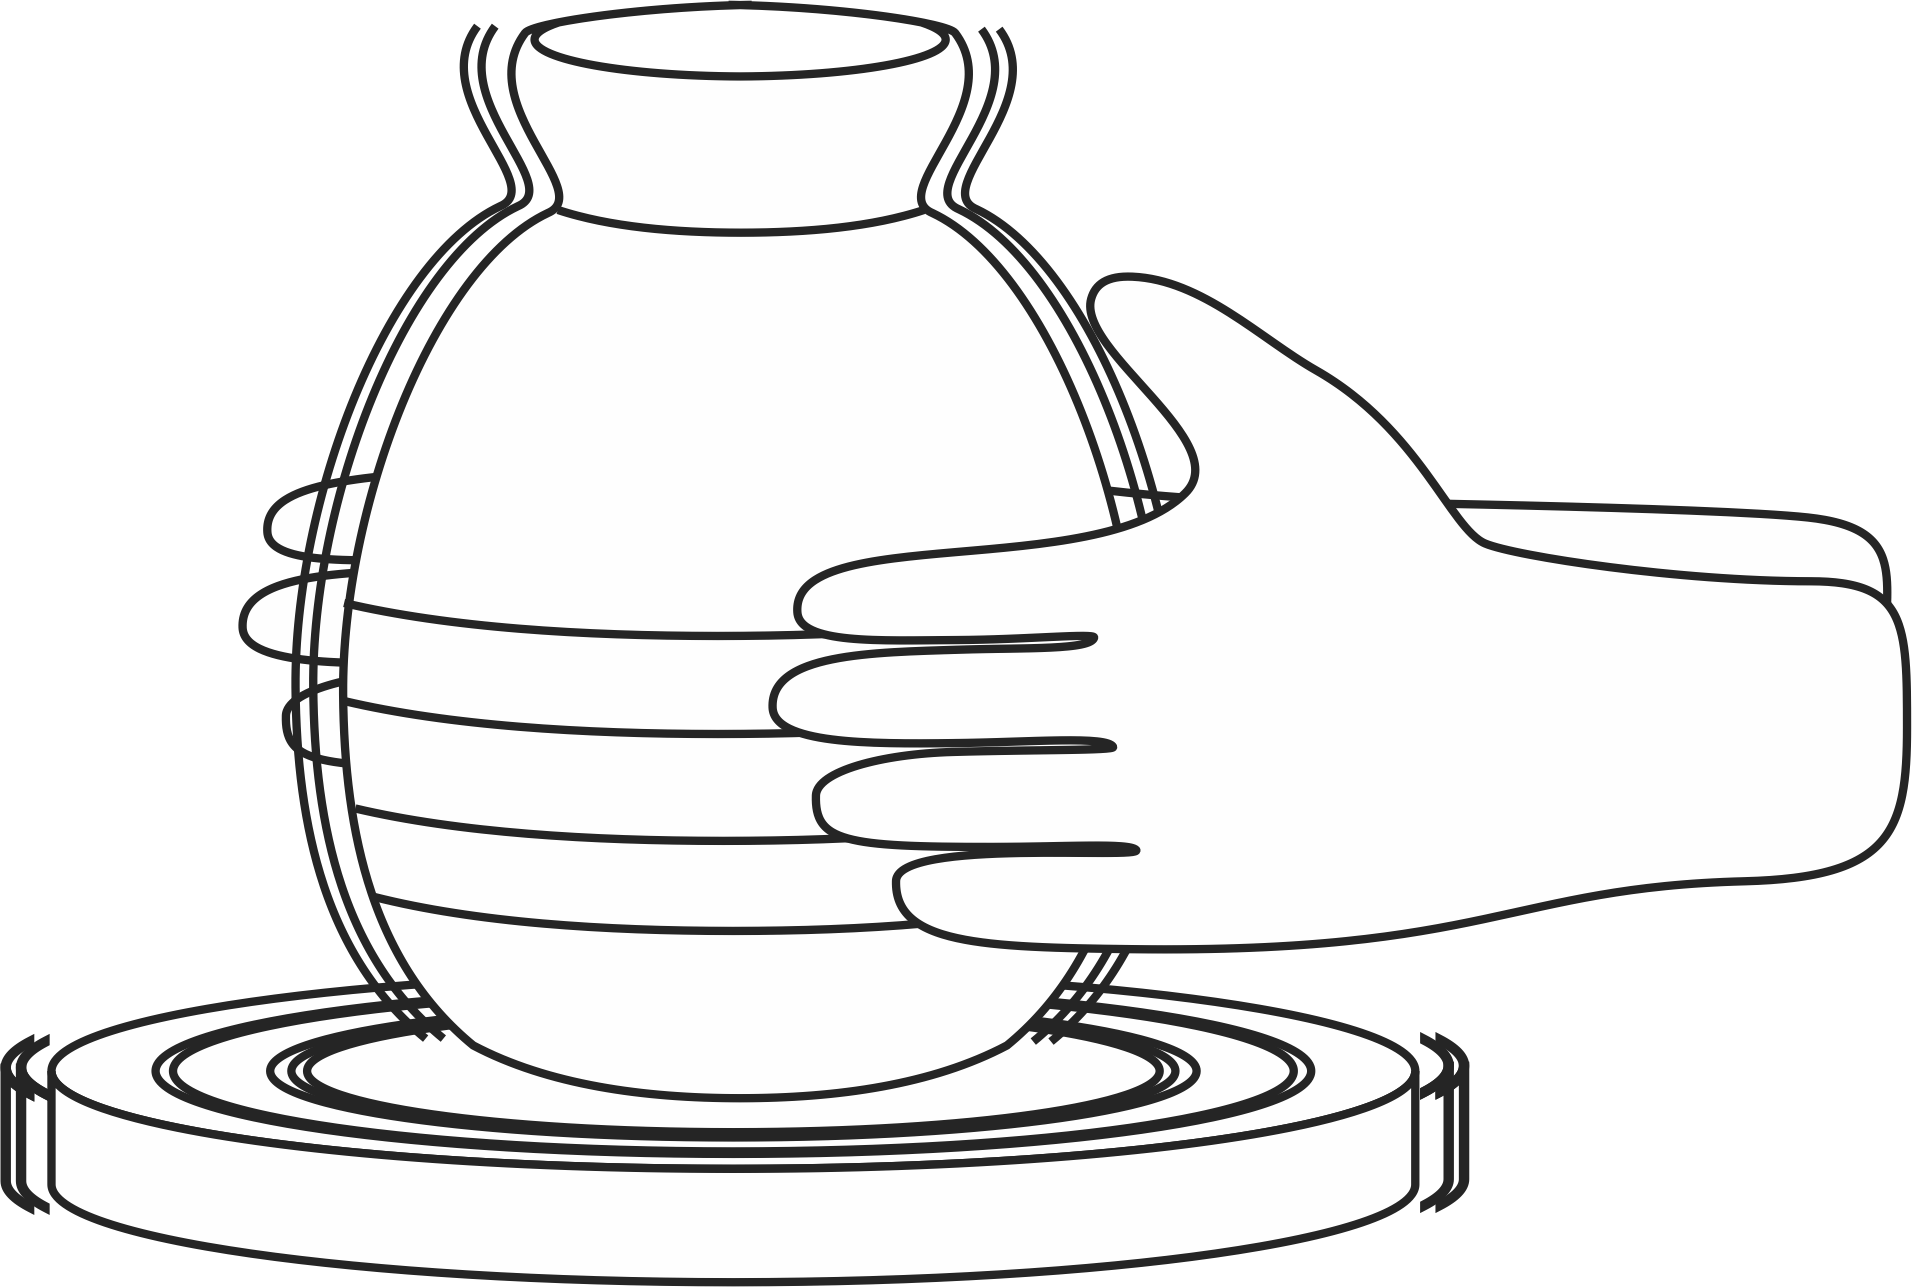 jeremiah bible story coloring pages - photo#22